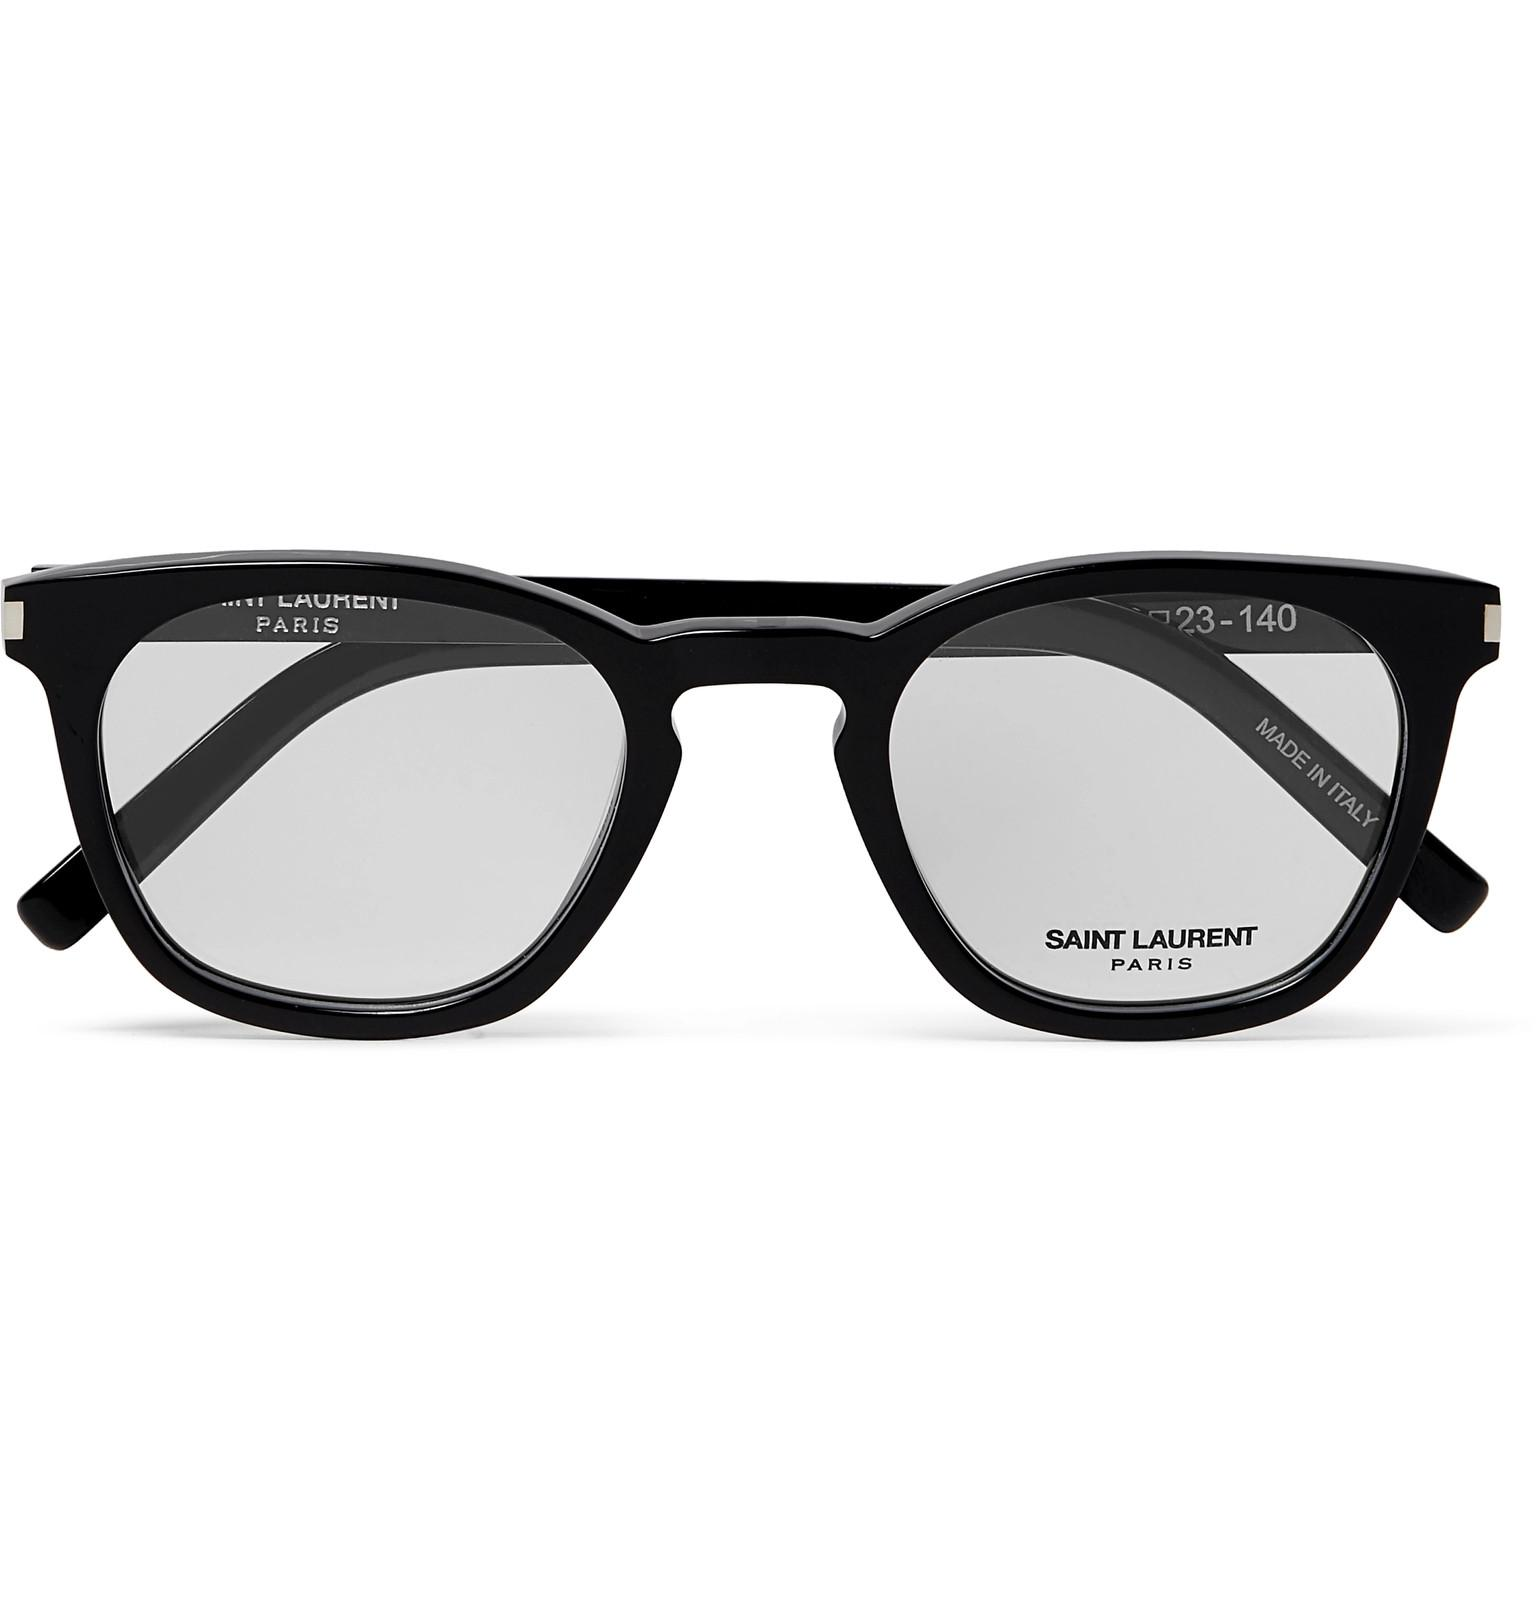 38f4d1d5b9 Saint Laurent D-frame Acetate Optical Glasses in Black for Men - Lyst